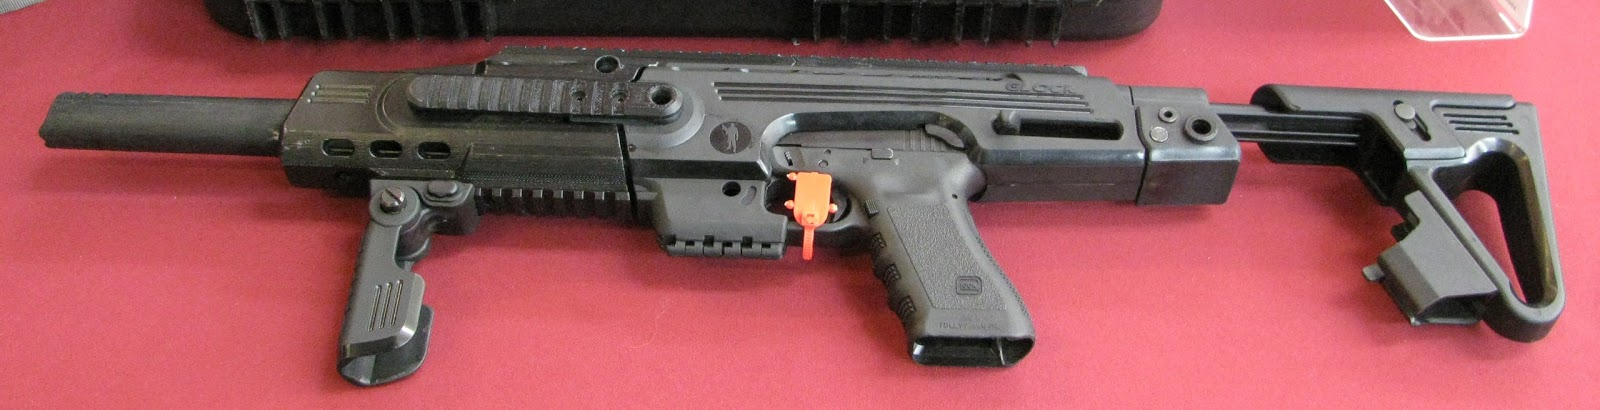 Roni Carbine Kit Roni's Glock 21 Based Carbine